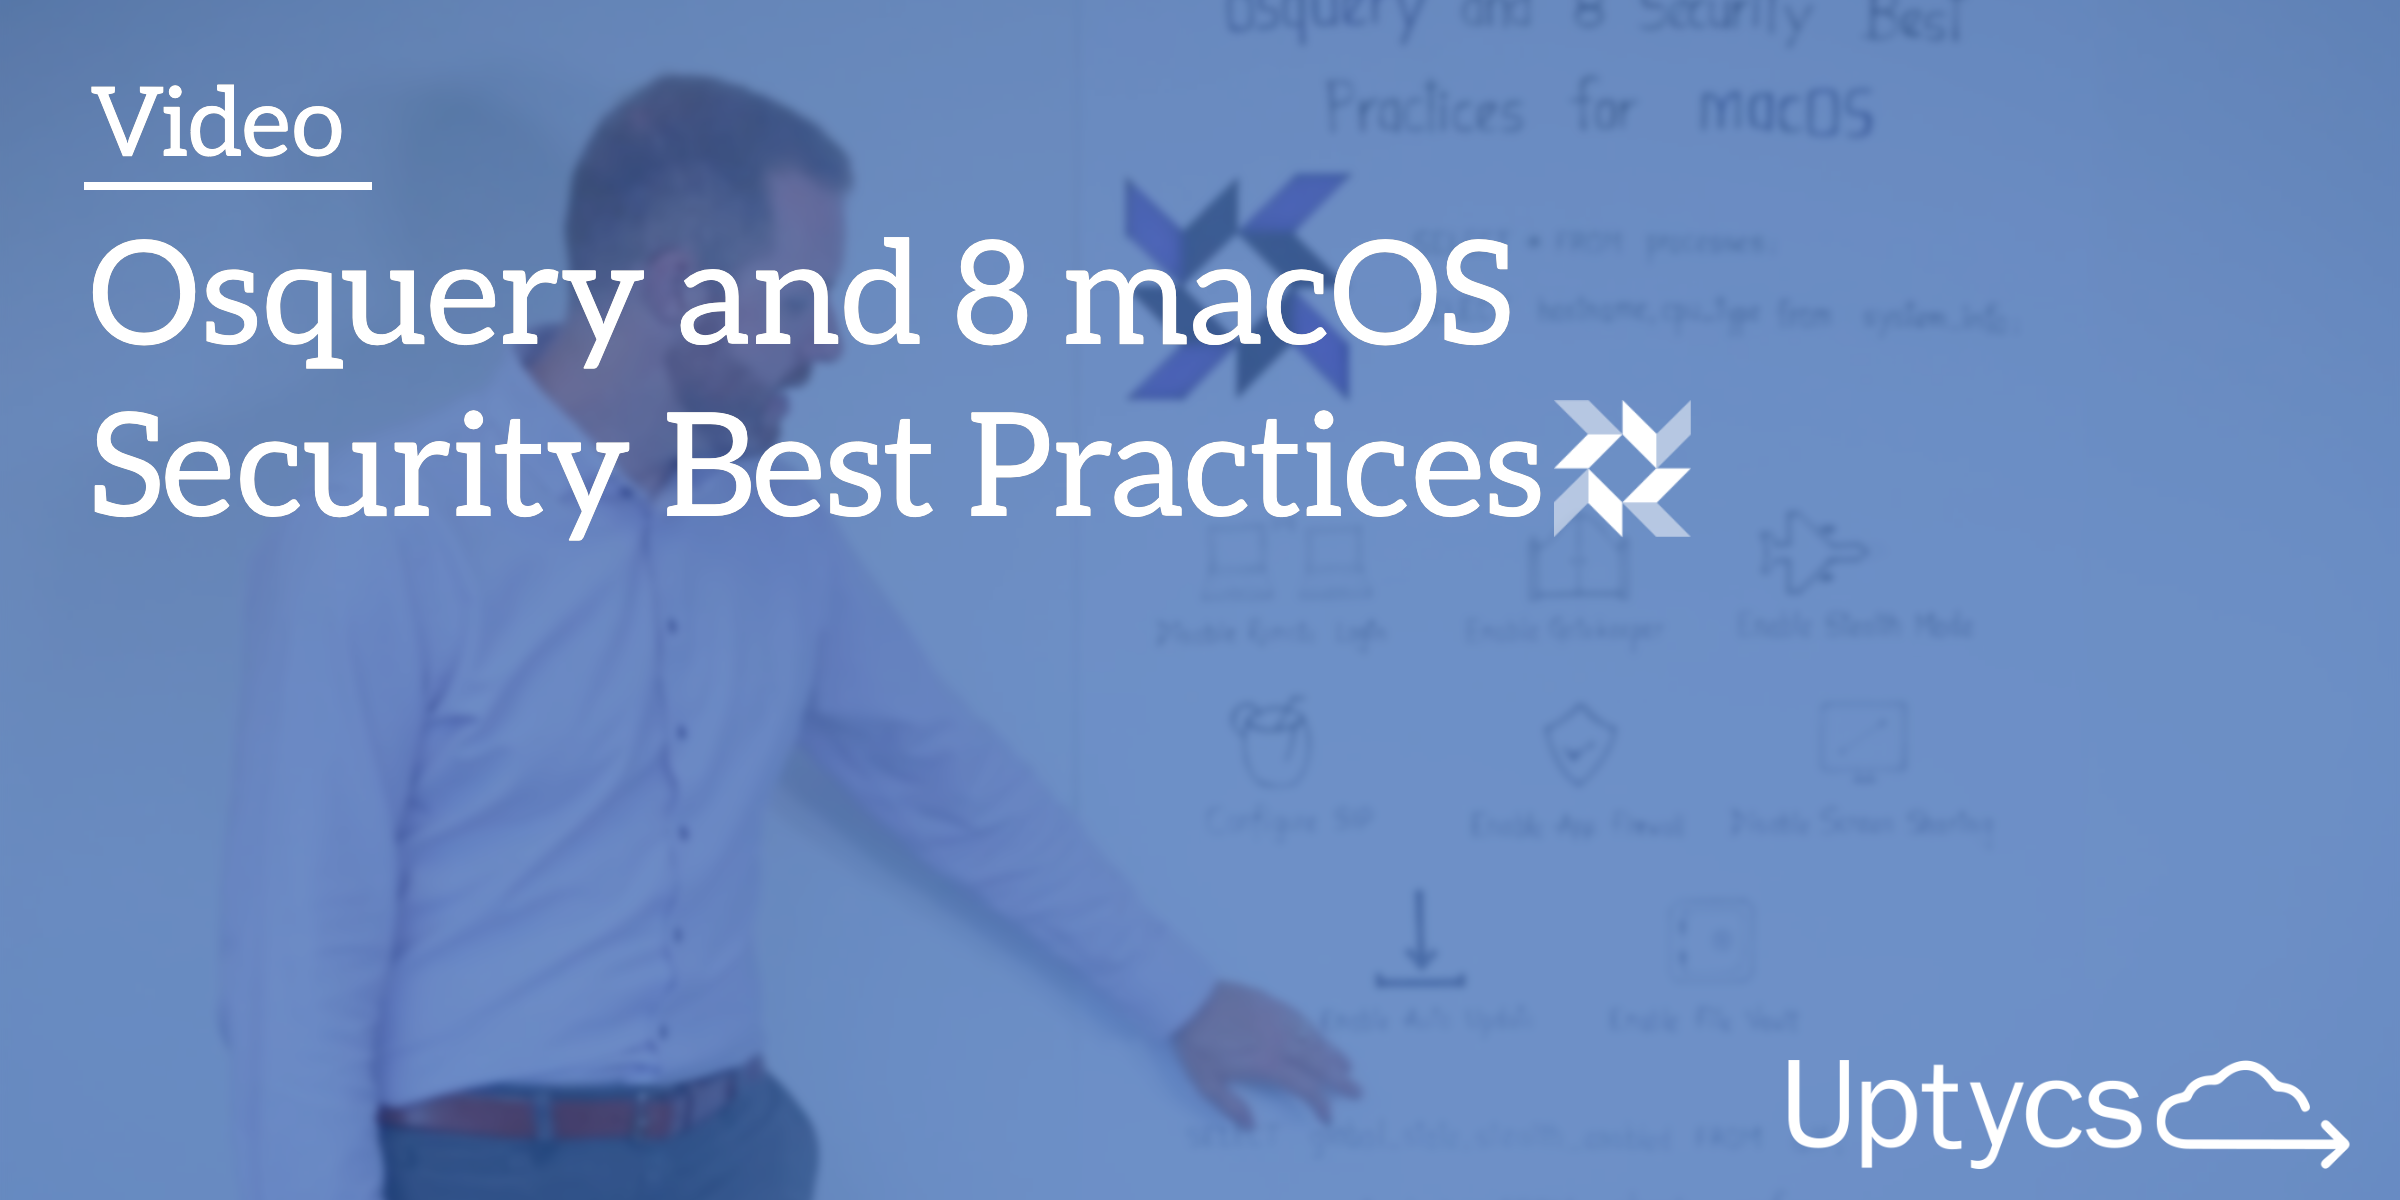 [Video] Osquery and 8 macOS Security Best Practices